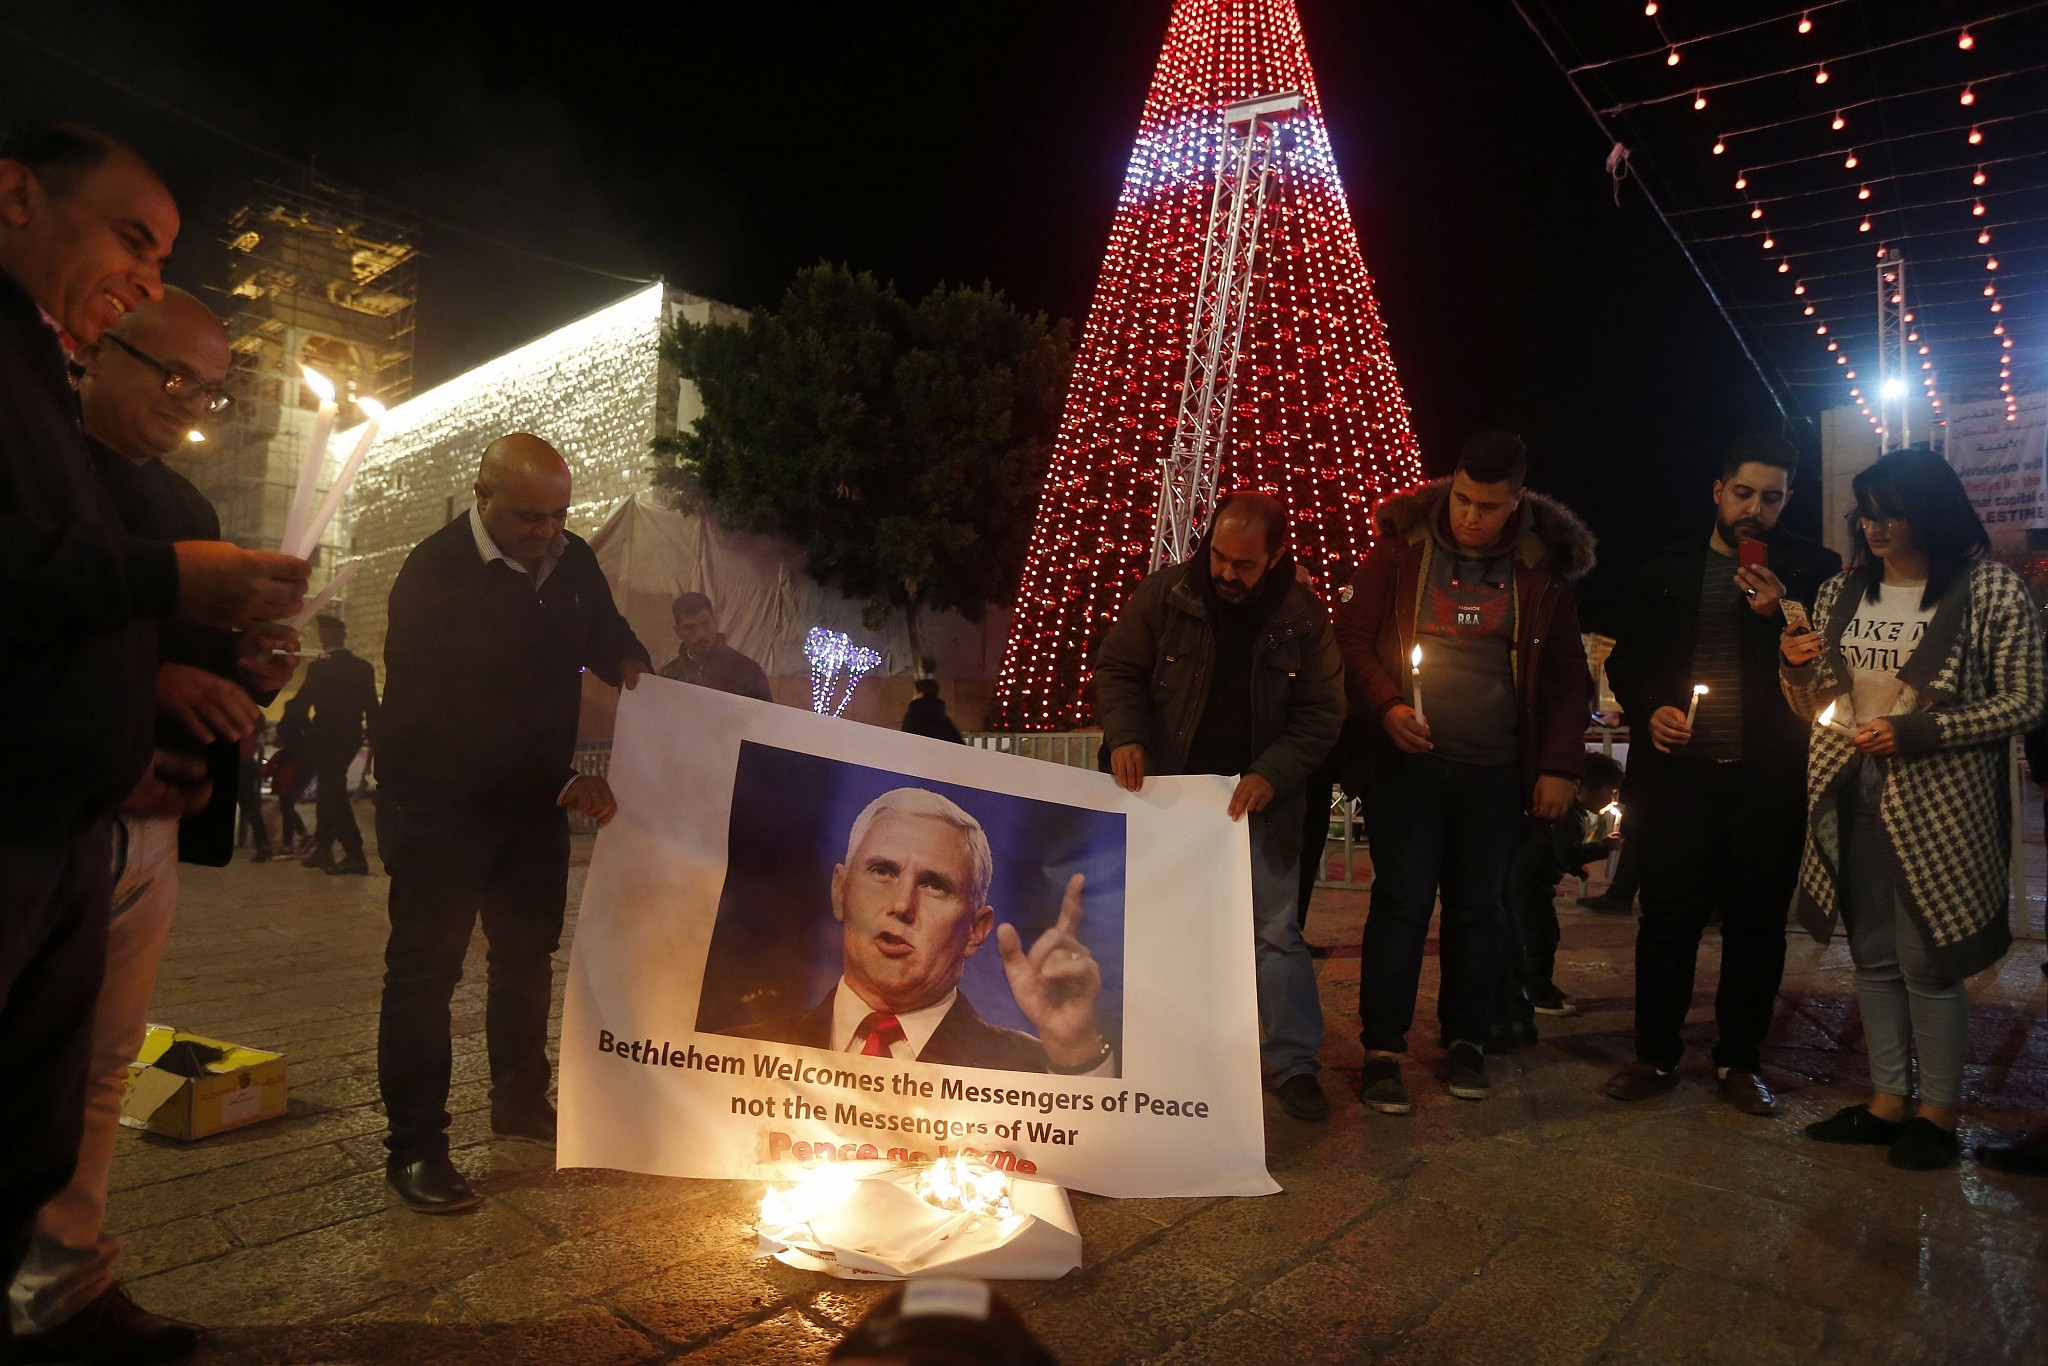 Pence Postpones Mideast Trip Again, Israeli Official Says